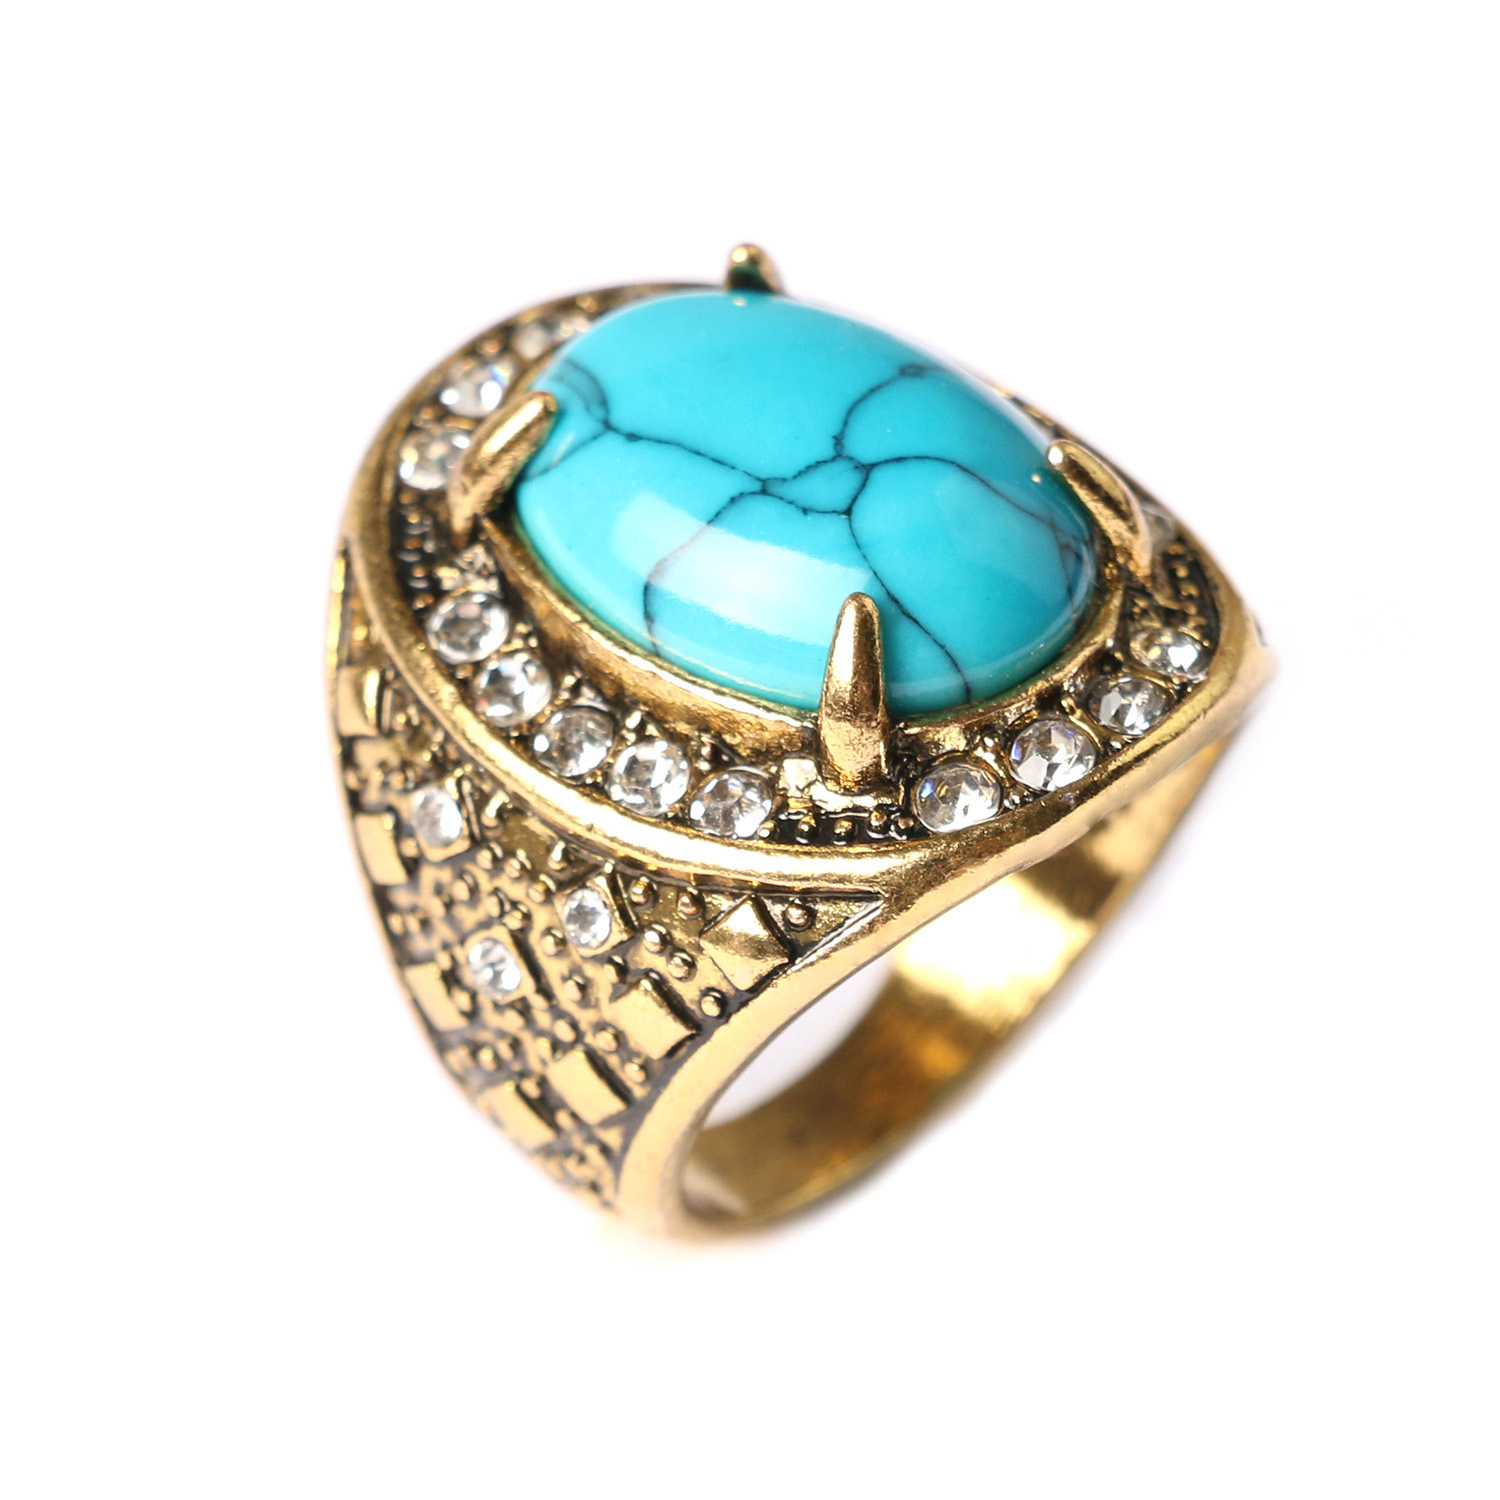 Vintage big bohemian blue green stone rings for women and for Decor jewelry